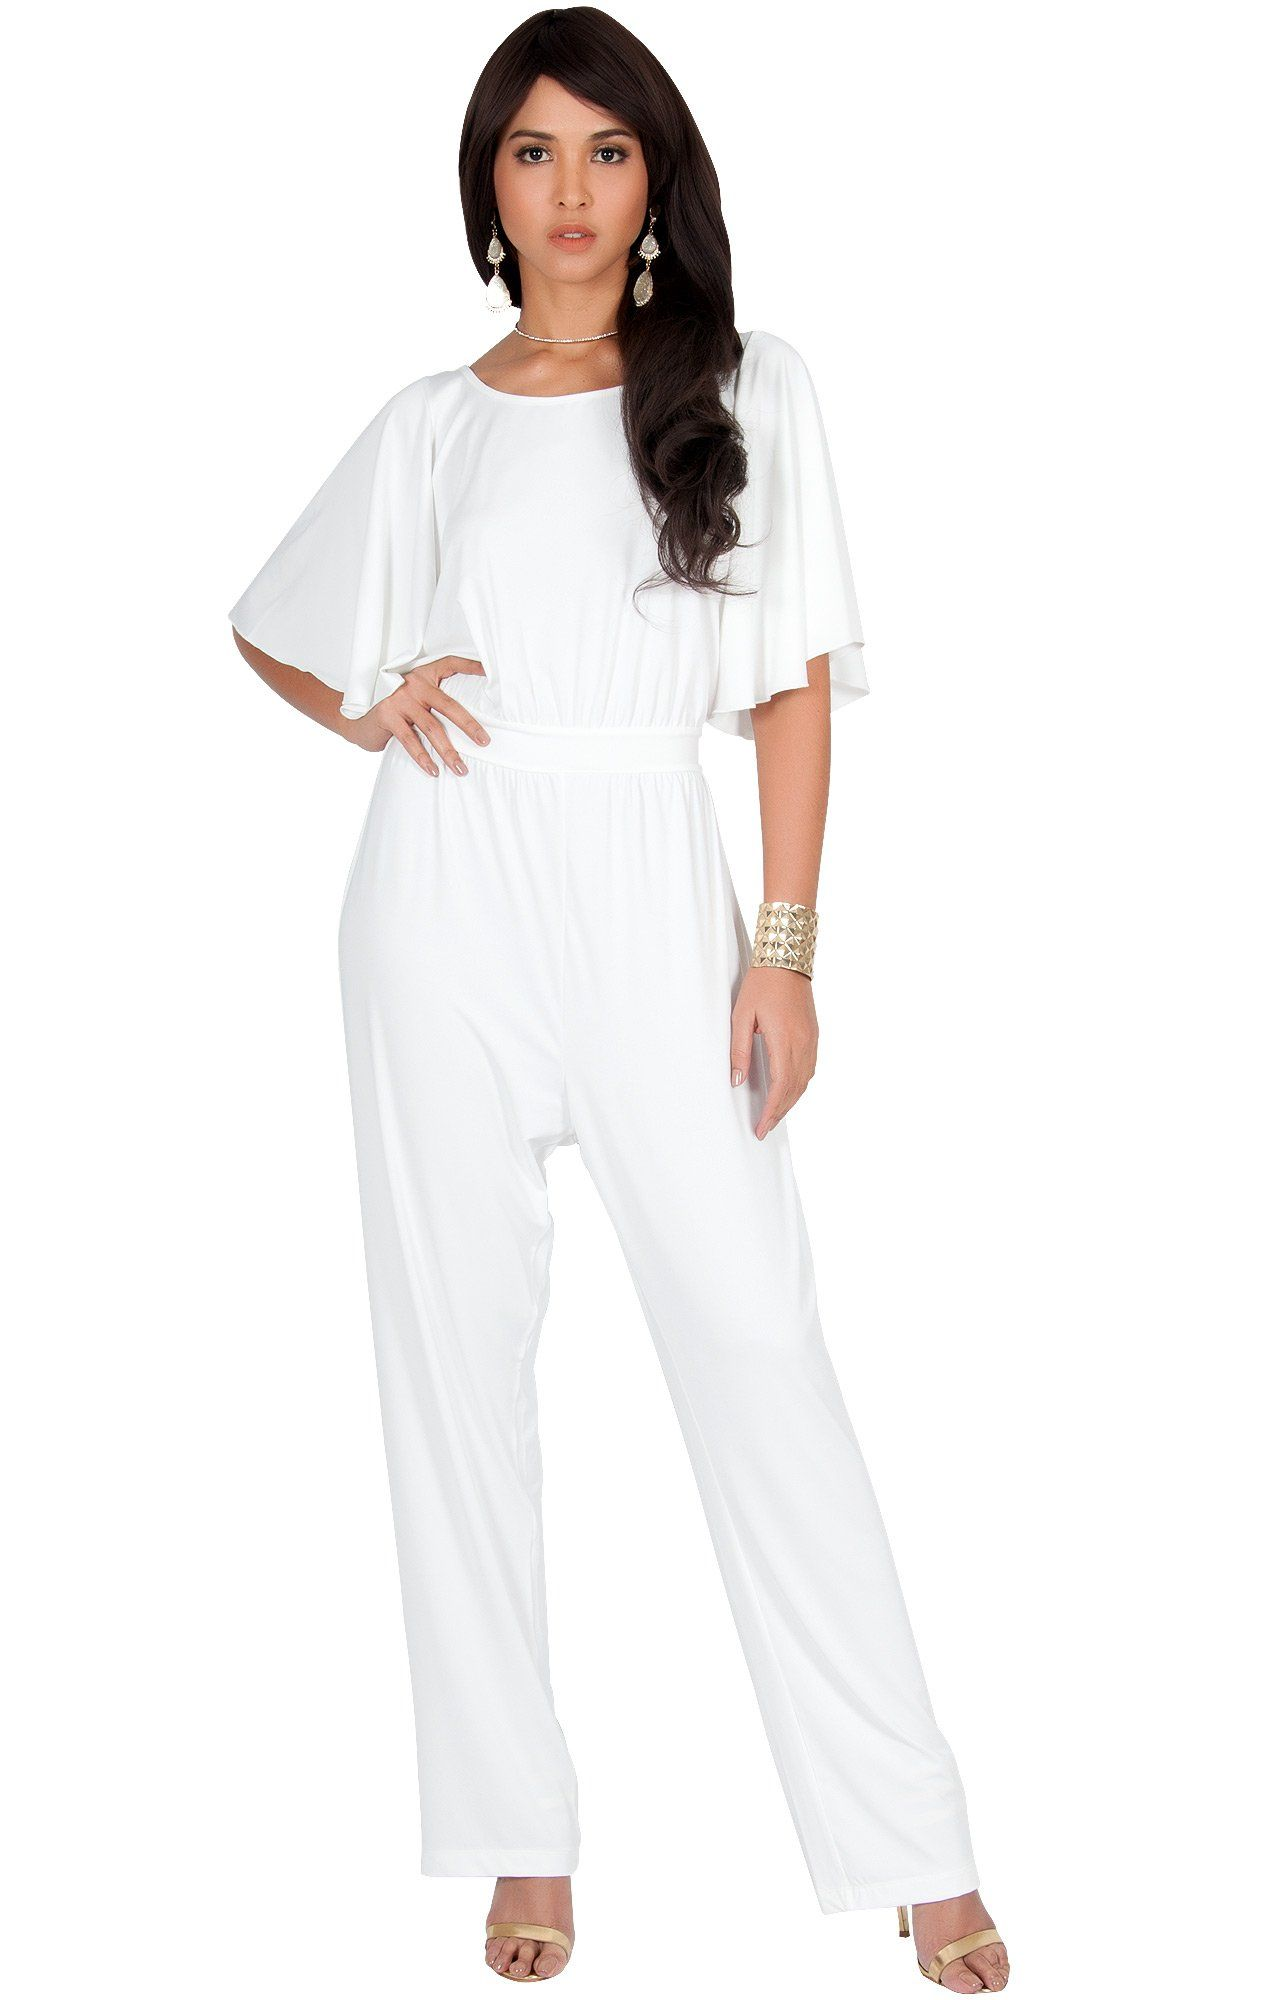 26cf8b8a9af2 KOH KOH Plus Size Women Short Sleeve Wide Leg Long Casual Cocktail Pants  One Piece Jumpsuit Jumpsuits Pant Suit Suits Romper Rompers Playsuit  Playsuits ...